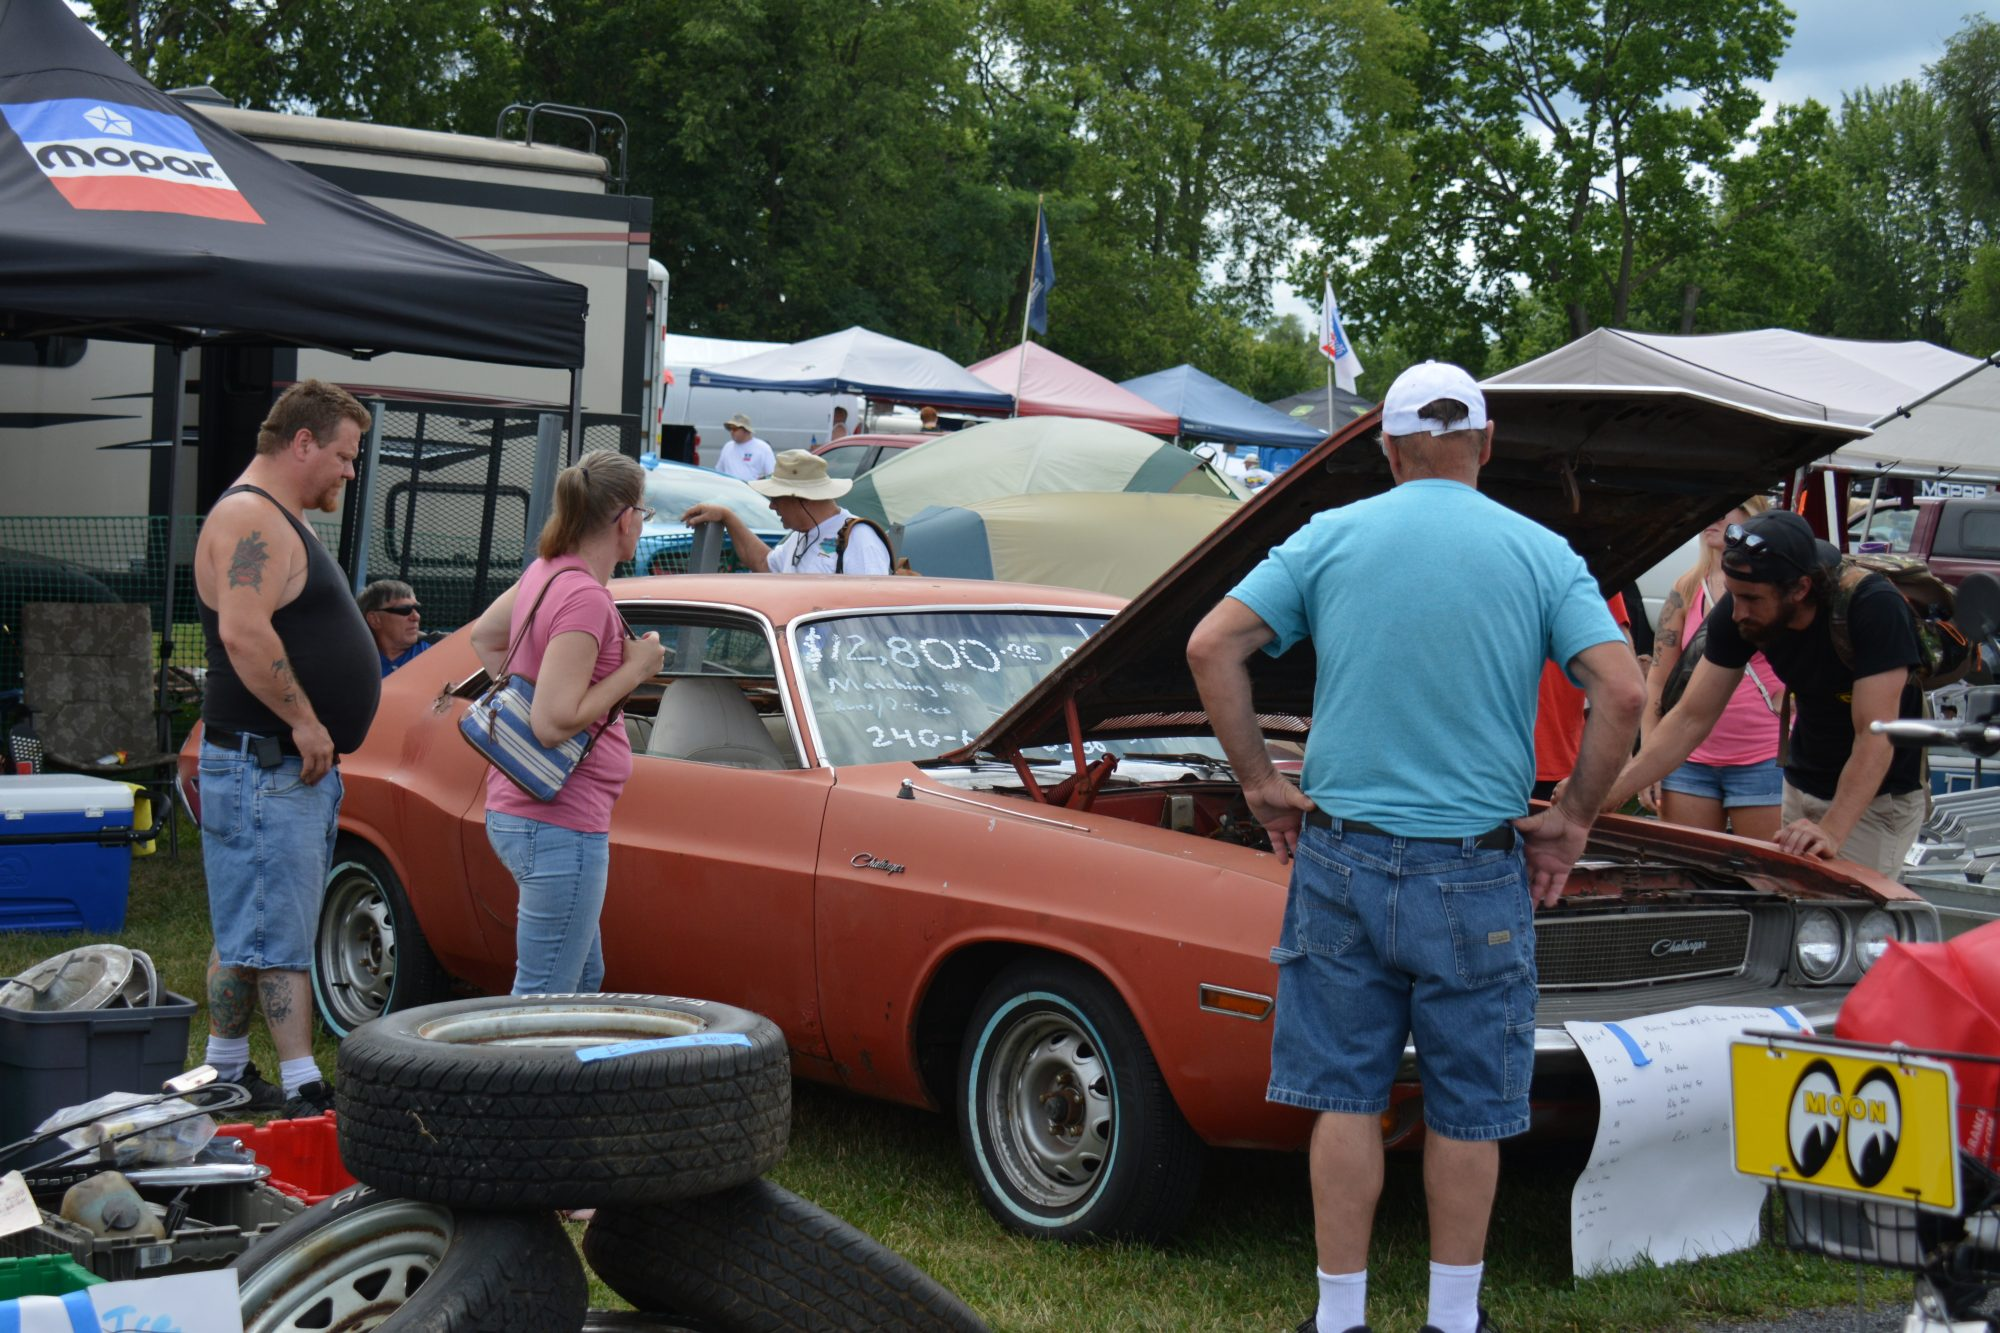 Spectators looking at a vehicle on display